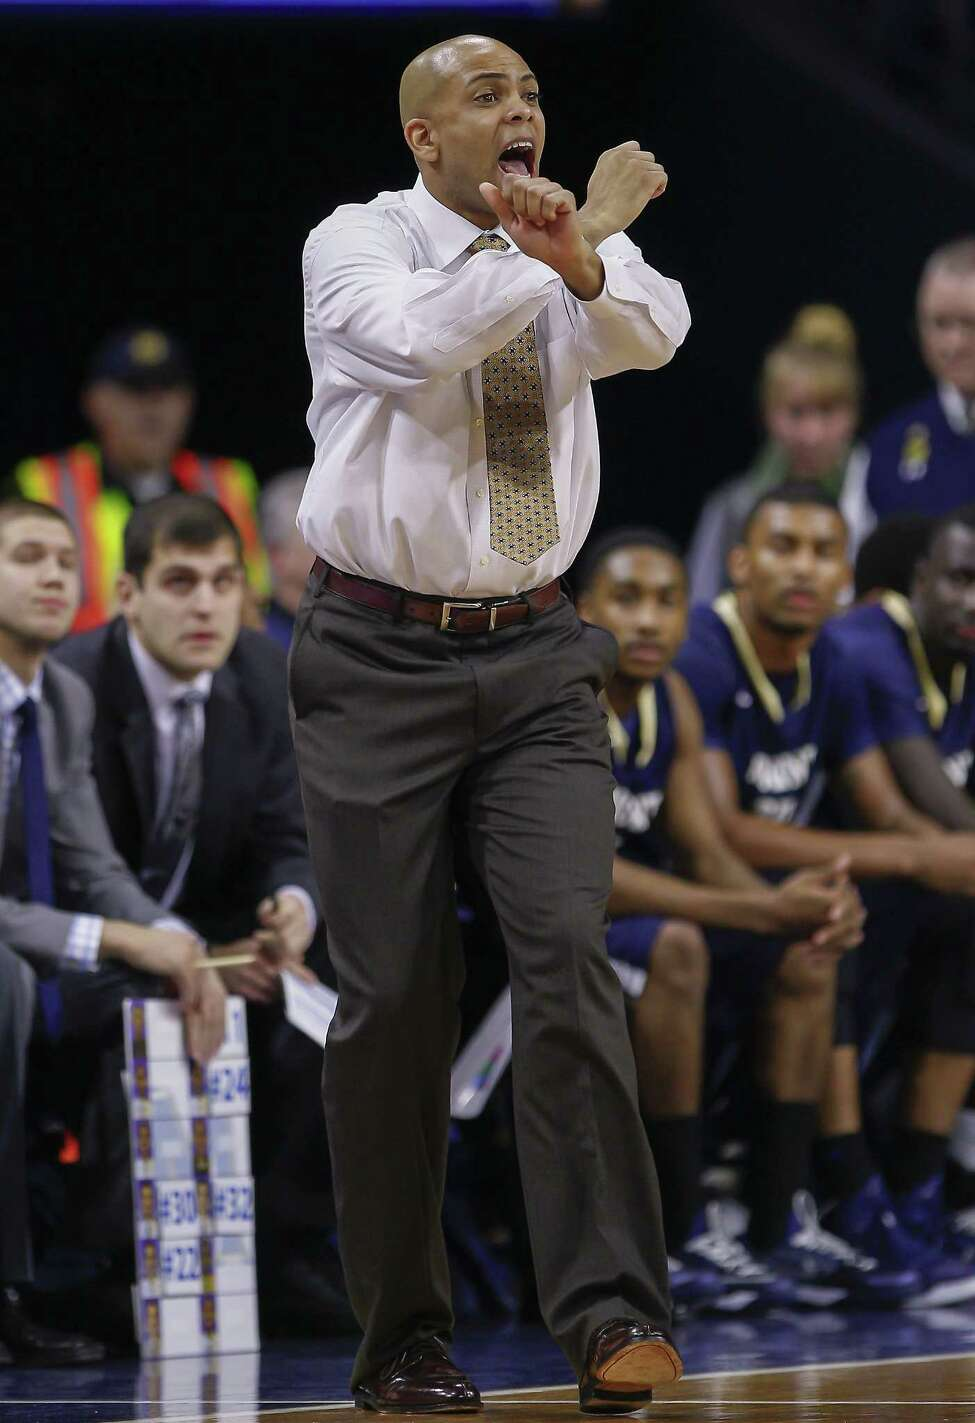 SOUTH BEND, IN - DECEMBER 09: Head coach Jamion Christian of the Mount St. Mary's Mountaineers is seen during the game against the Notre Dame Fighting Irish at Purcell Pavilion on December 9, 2014 in South Bend, Indiana. (Photo by Michael Hickey/Getty Images) ORG XMIT: 521949767